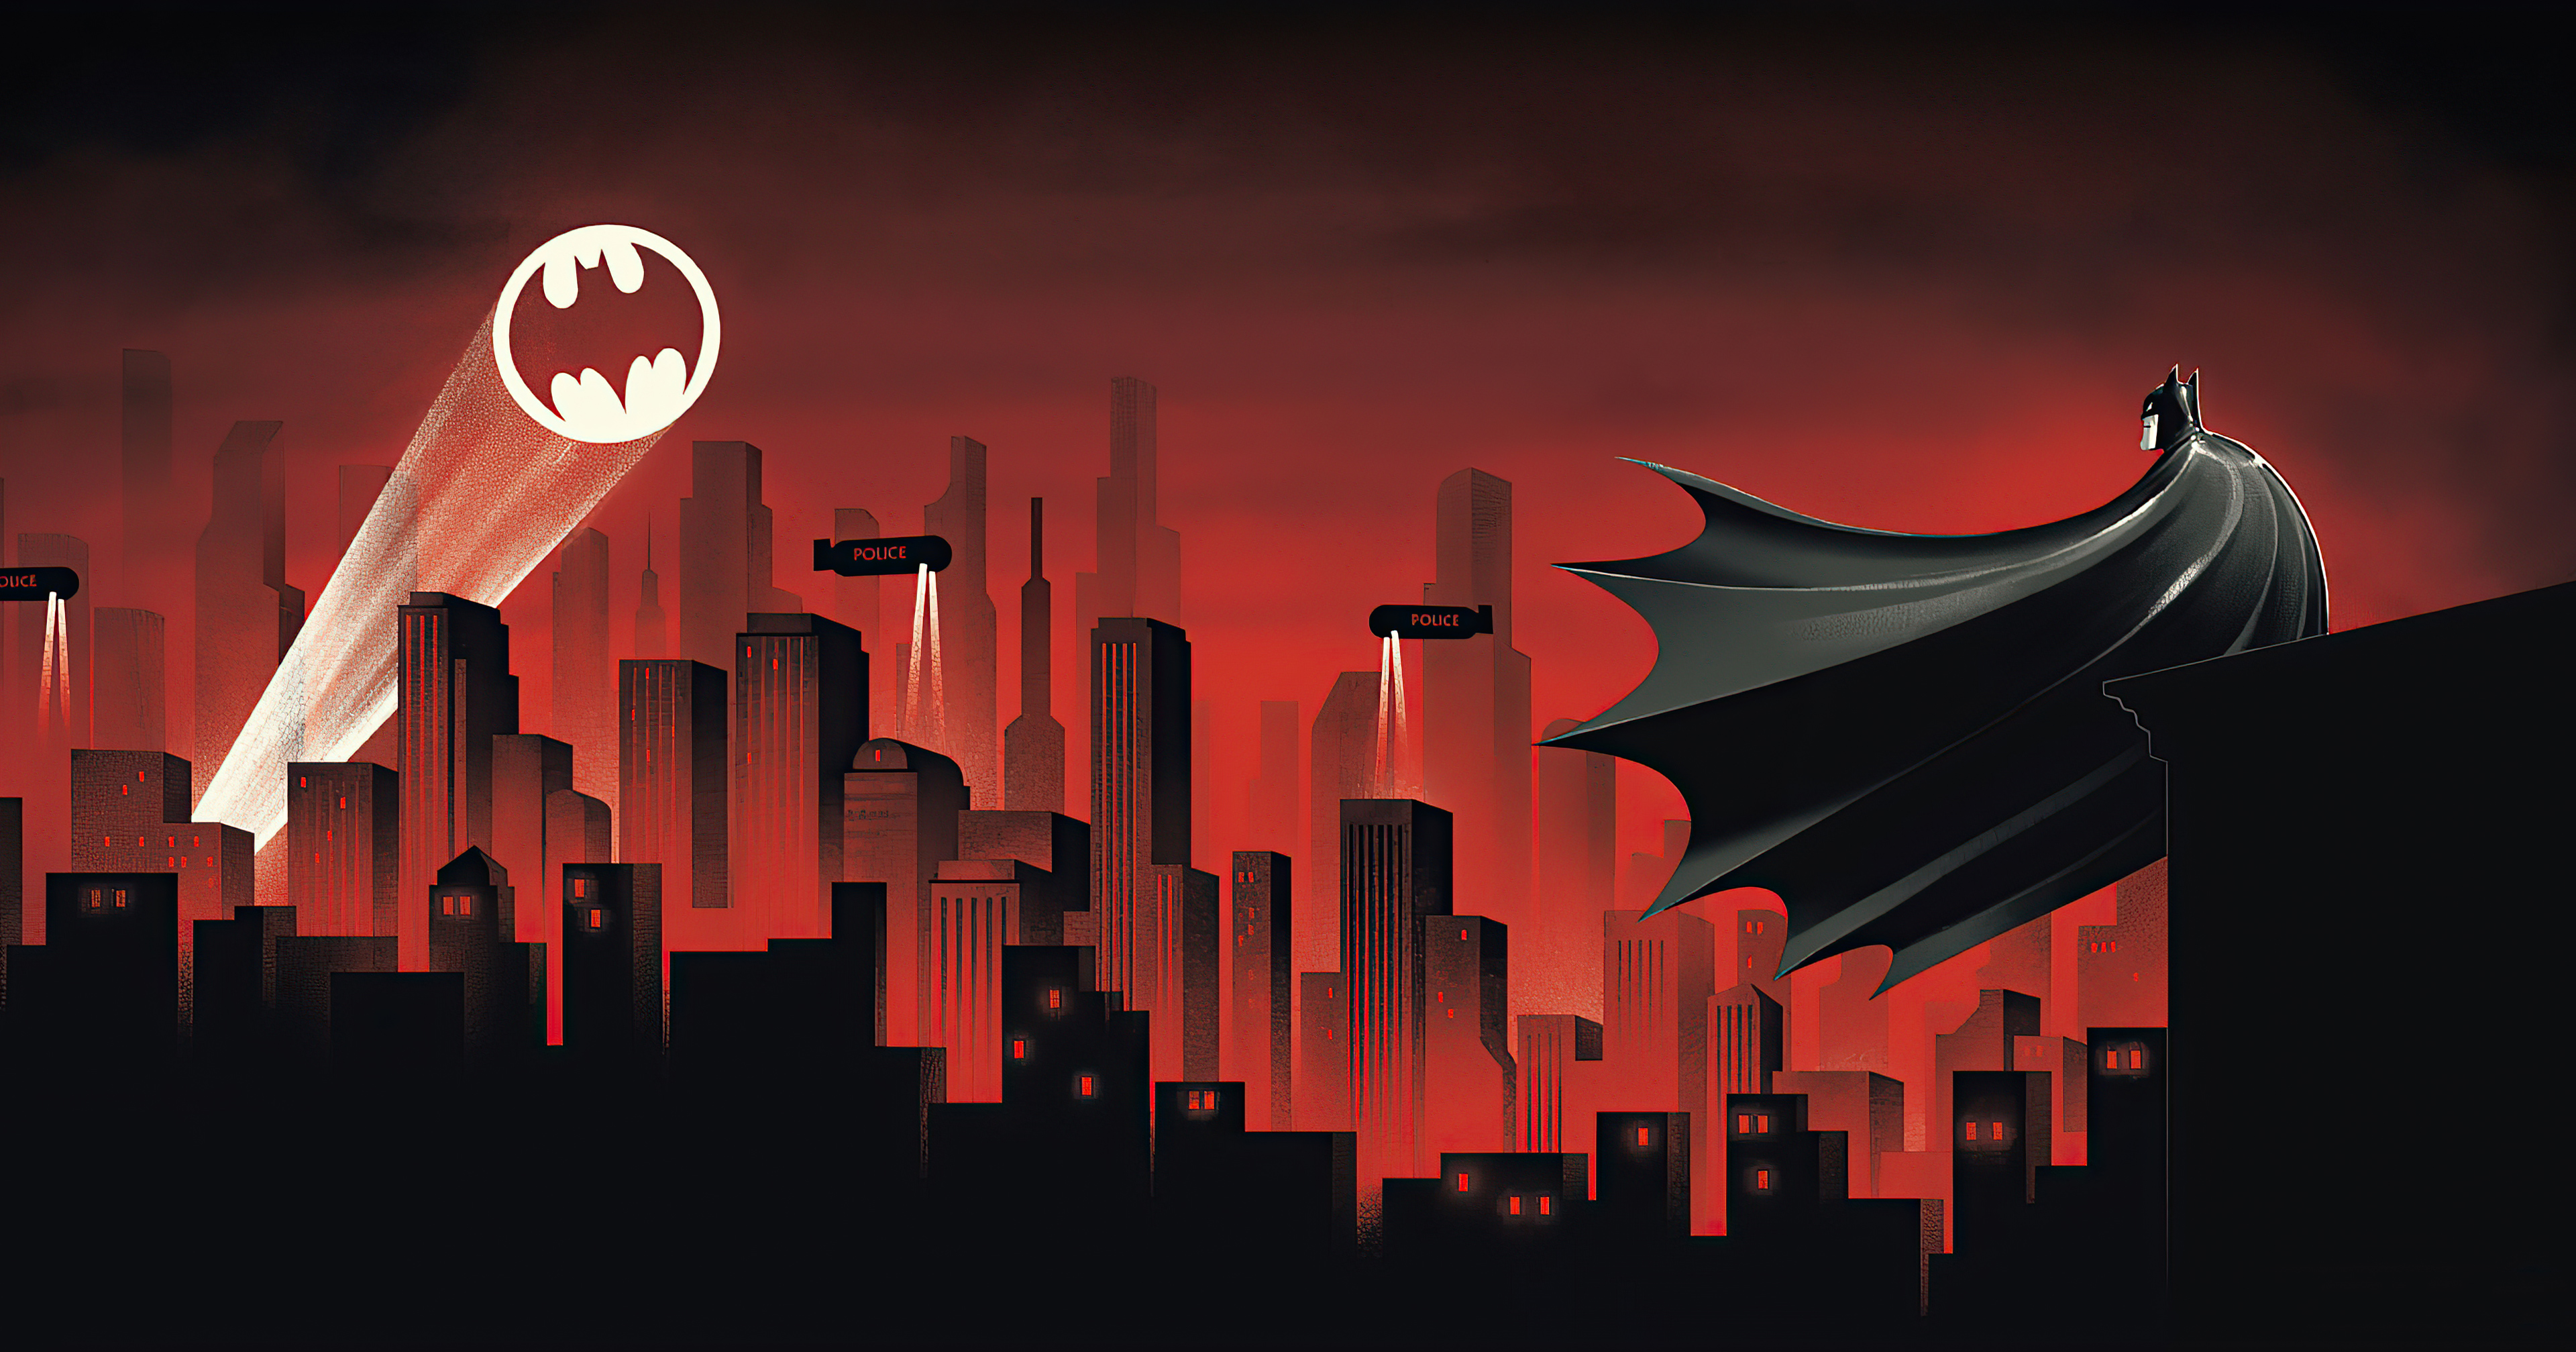 Batman The Animated Series Red World 4k Hd Superheroes 4k Wallpapers Images Backgrounds Photos And Pictures